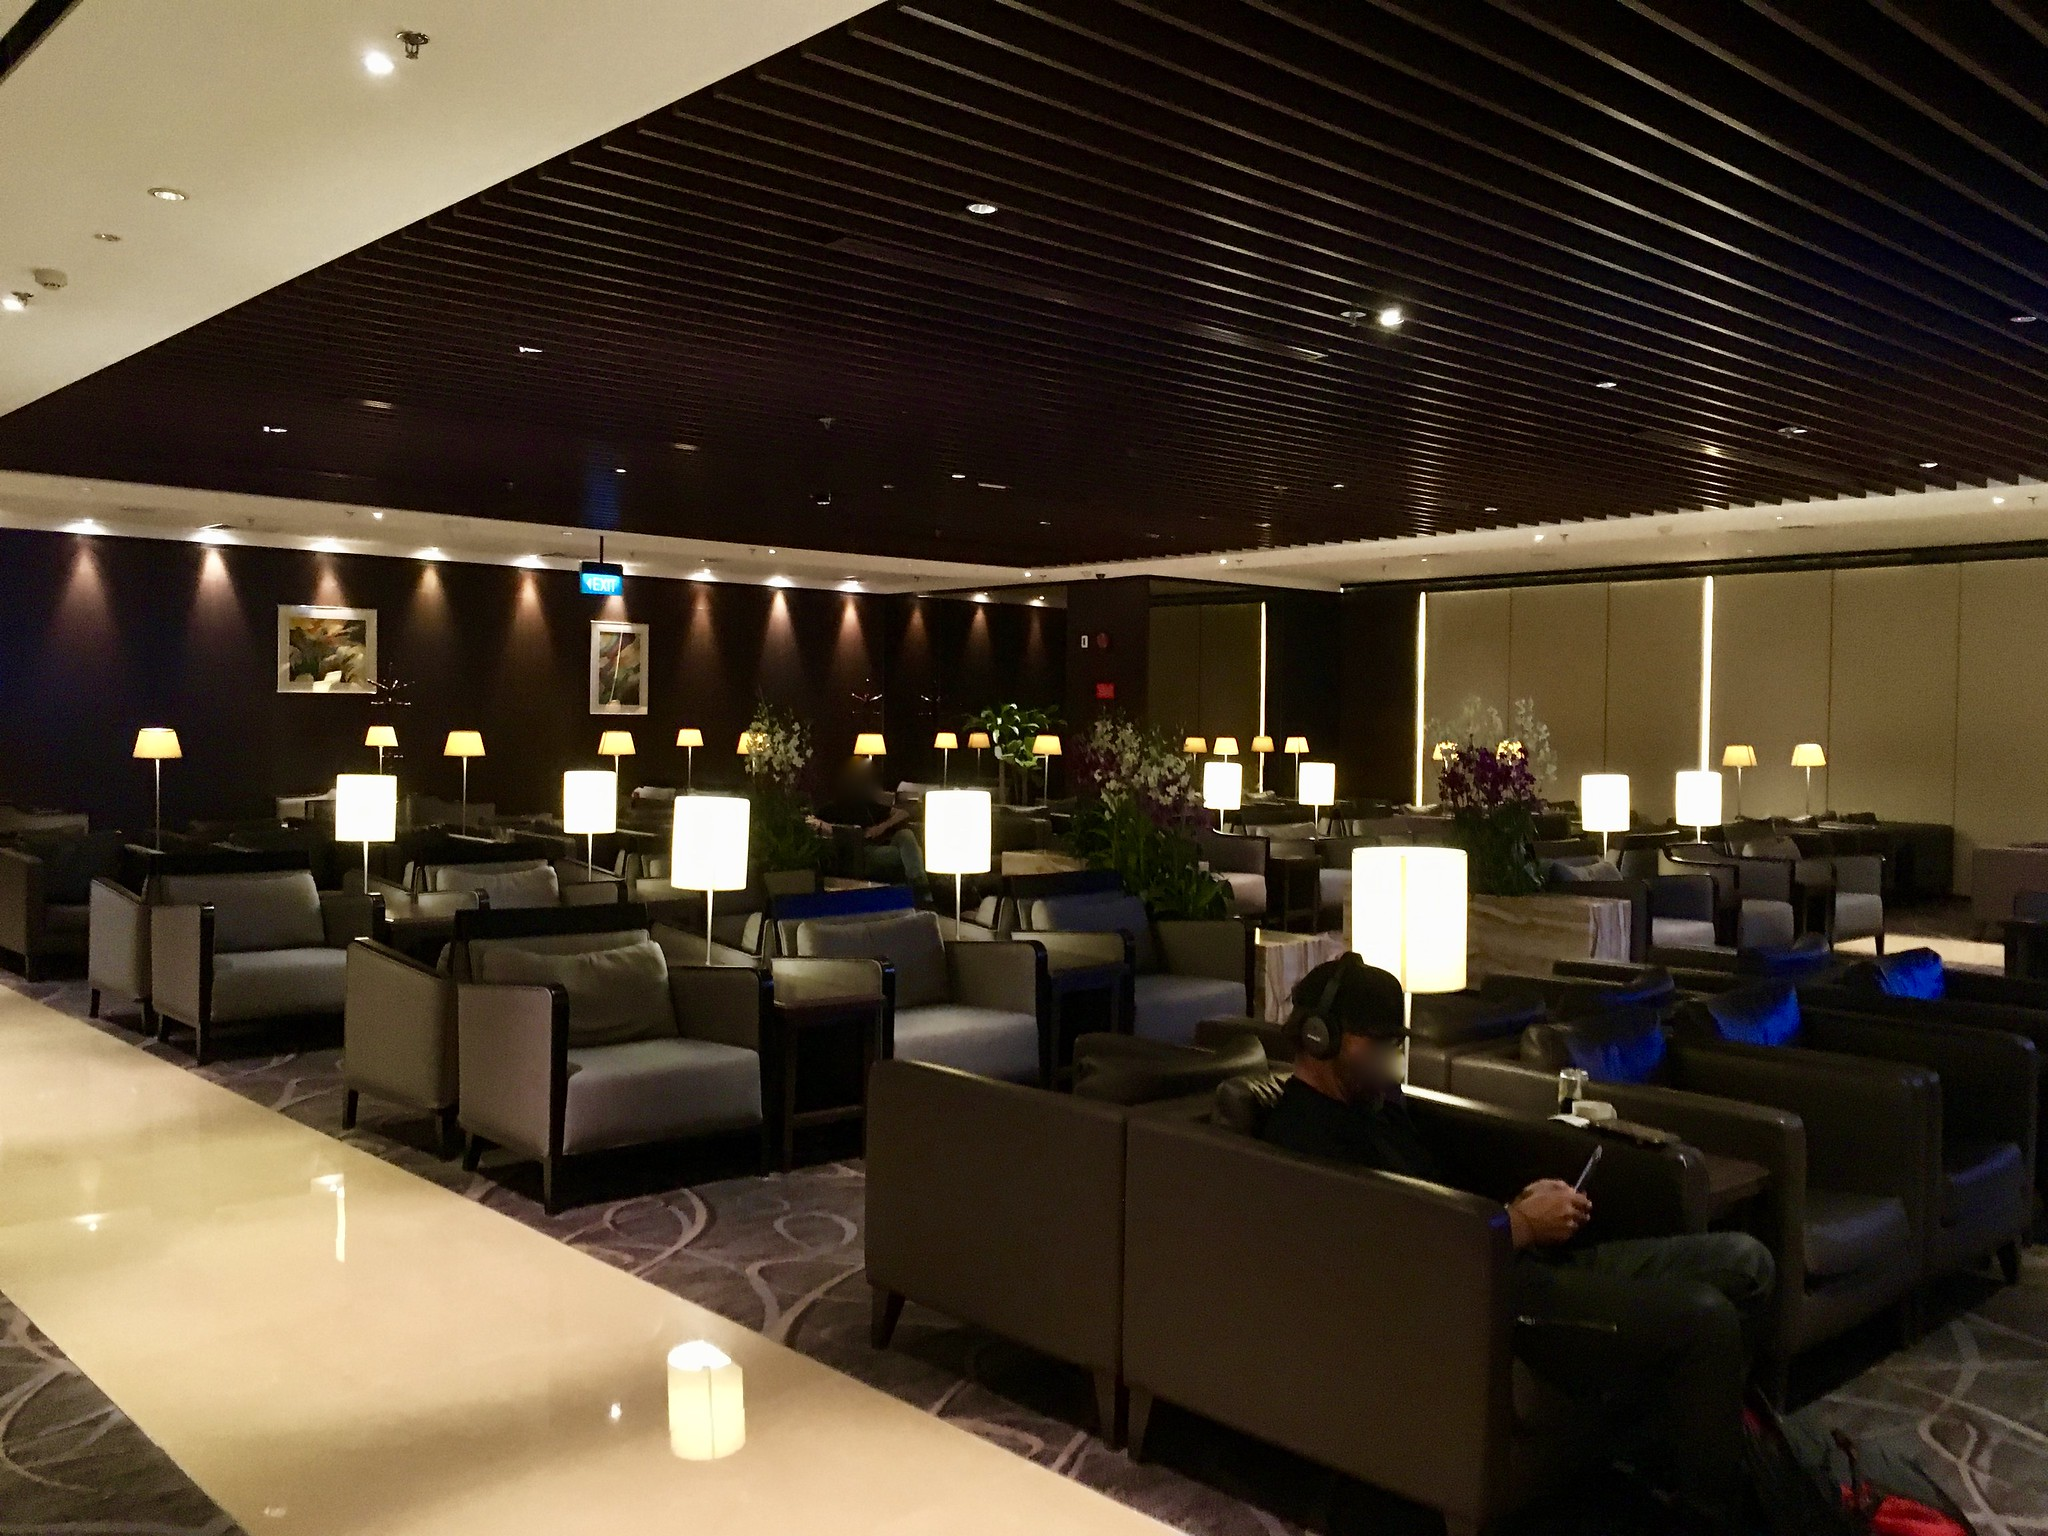 Singapore Changi Airport Terminal 2 SilverKris Business Lounge